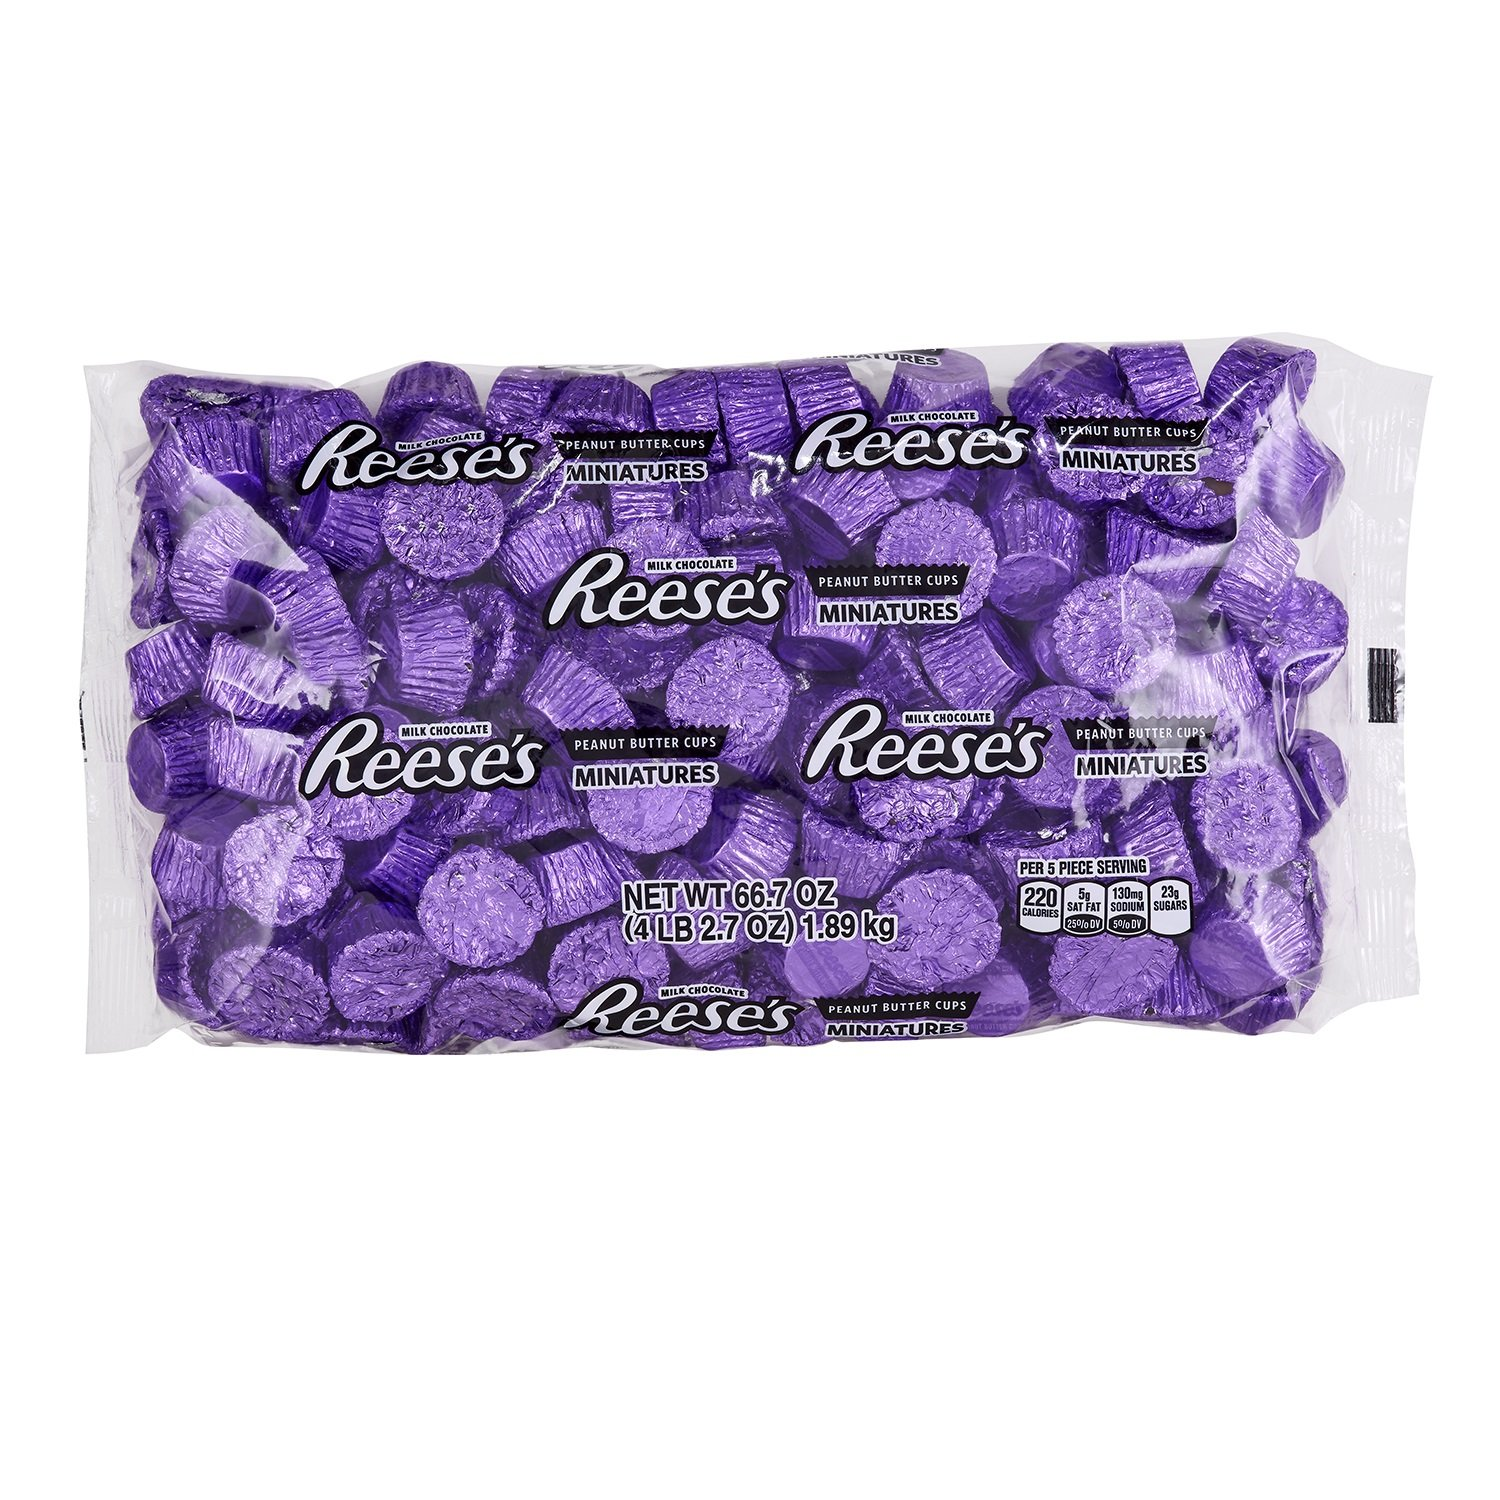 REESE'S Peanut Butter Cups Miniatures, Chocolate Candy, Purple Foils, 66.7 Ounce Bulk Candy by Reese's